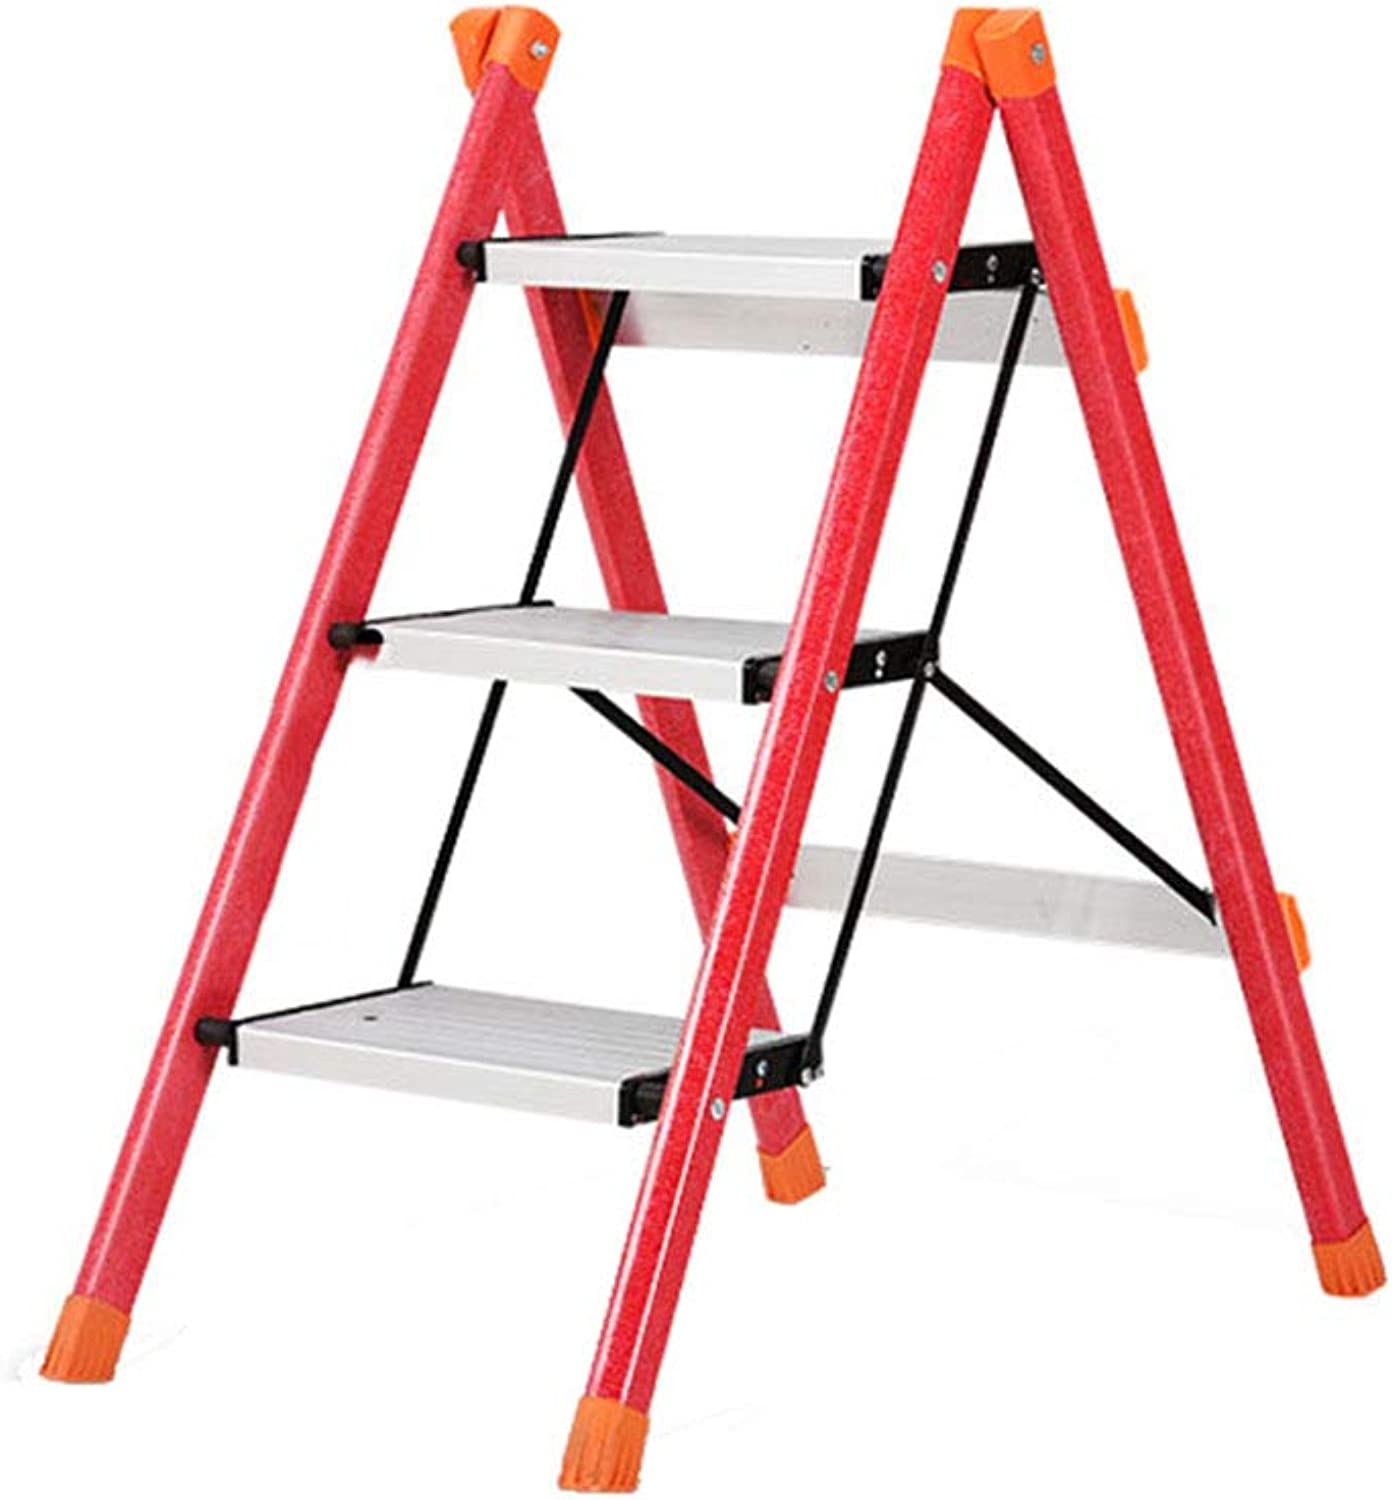 Folding Ladder Stool 3 Steps Small Compact with Non-Slip Mats Flower Shelves 150Kg for Home Office